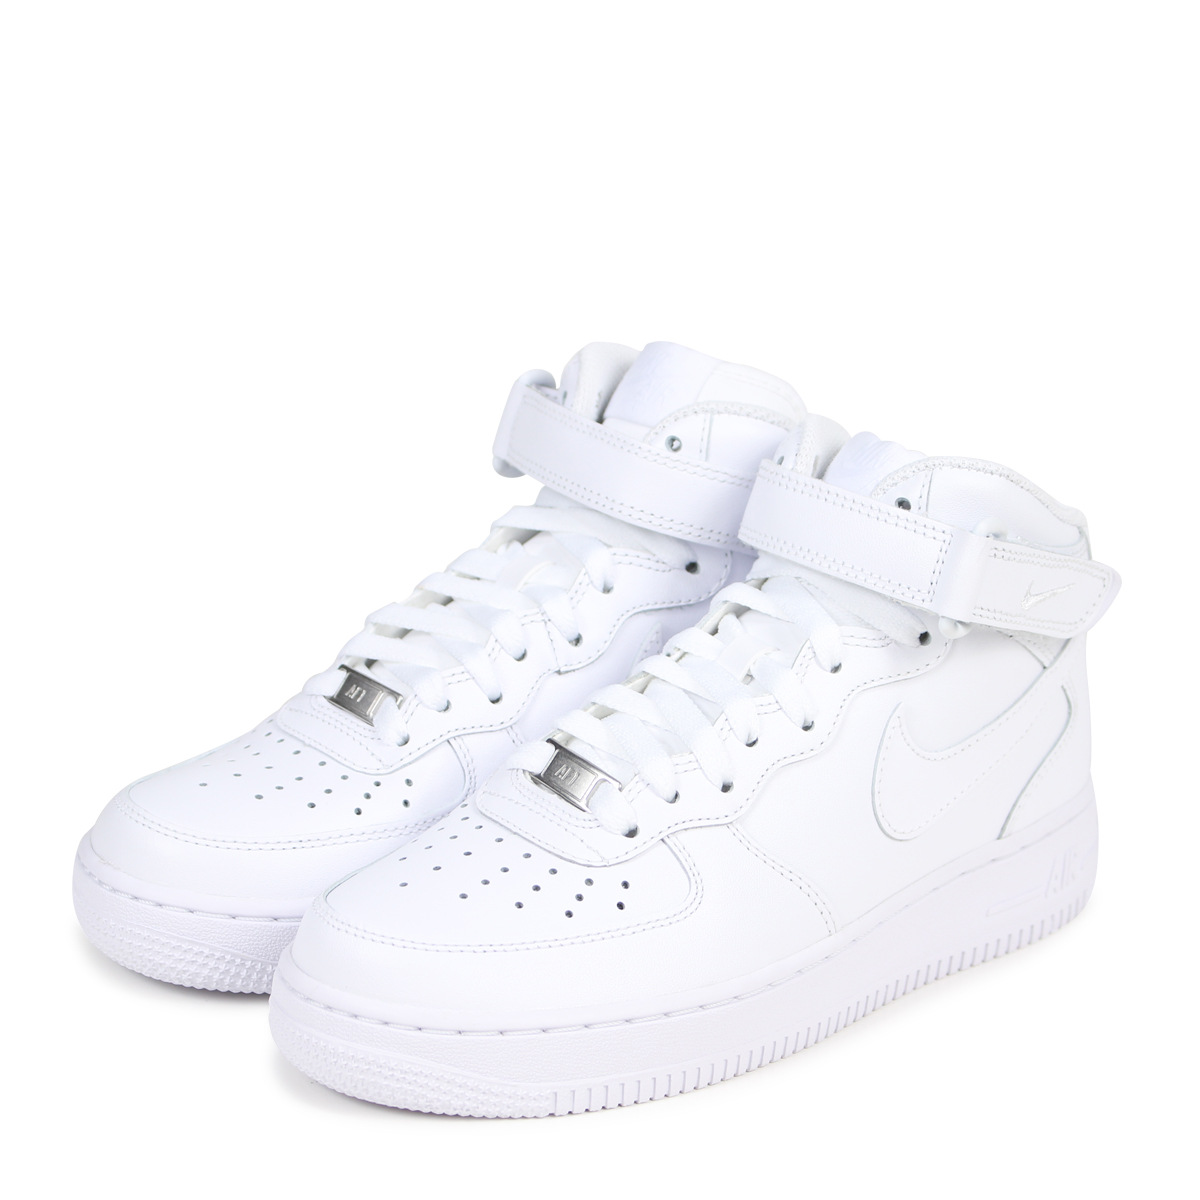 ff31f43ee NIKE Nike Air Force sneakers Womens WMNS AIR FORCE 1 MID 07 air force 1 mid  ...